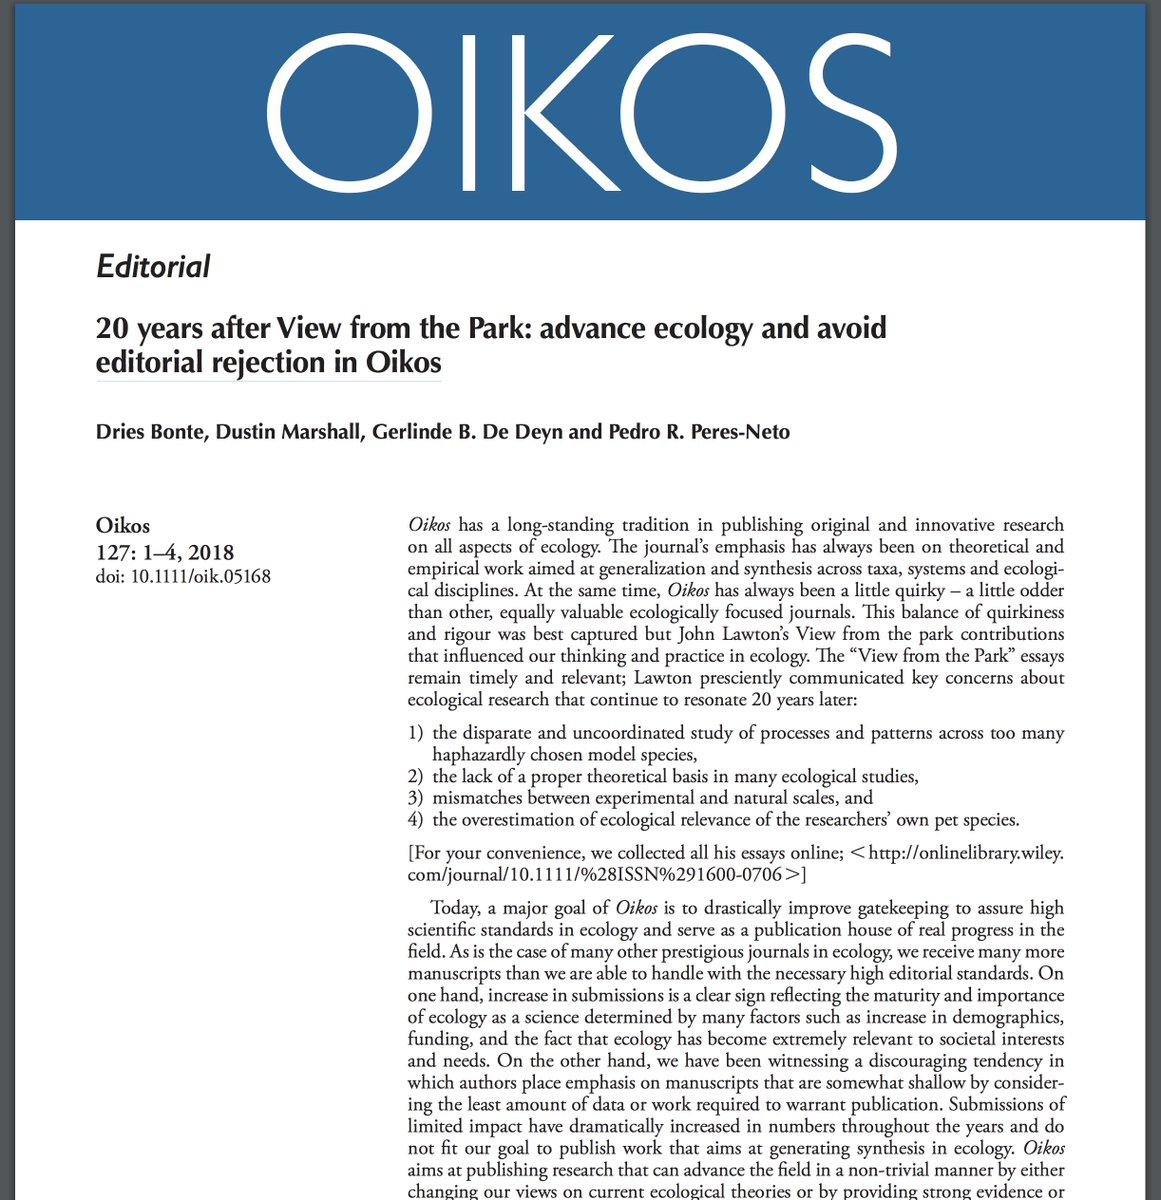 oikos synthesising ecology 3 (online) 58 nature and resources 0028-0844 59 nature environment and pollution technology 0972-6268 60 oikos synthesising ecology 0030-1299.